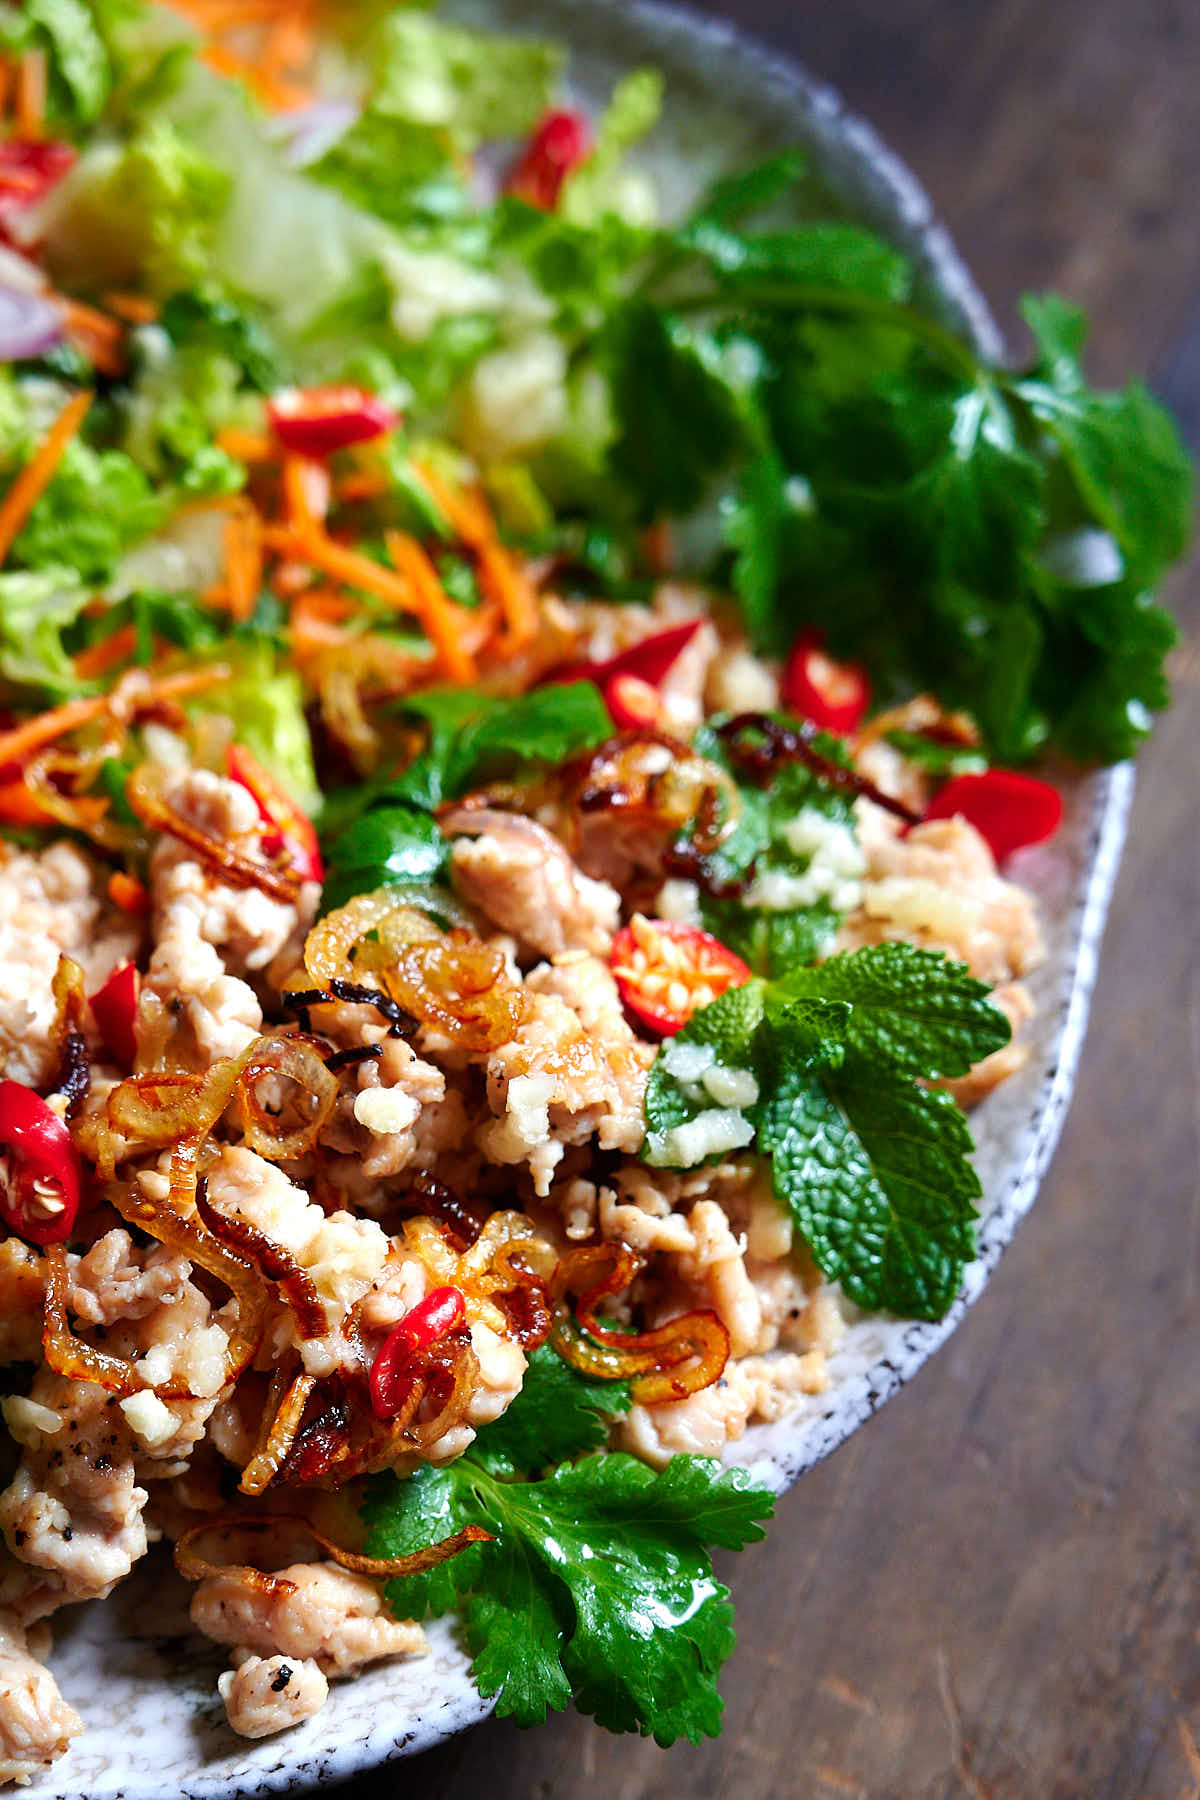 To view of larb gai - plate filled with shredded chicken, cabbage leaves, mint, basil and coriander leaves, sliced scallions and Thai red peppers, and seasoned with Thai dressing.